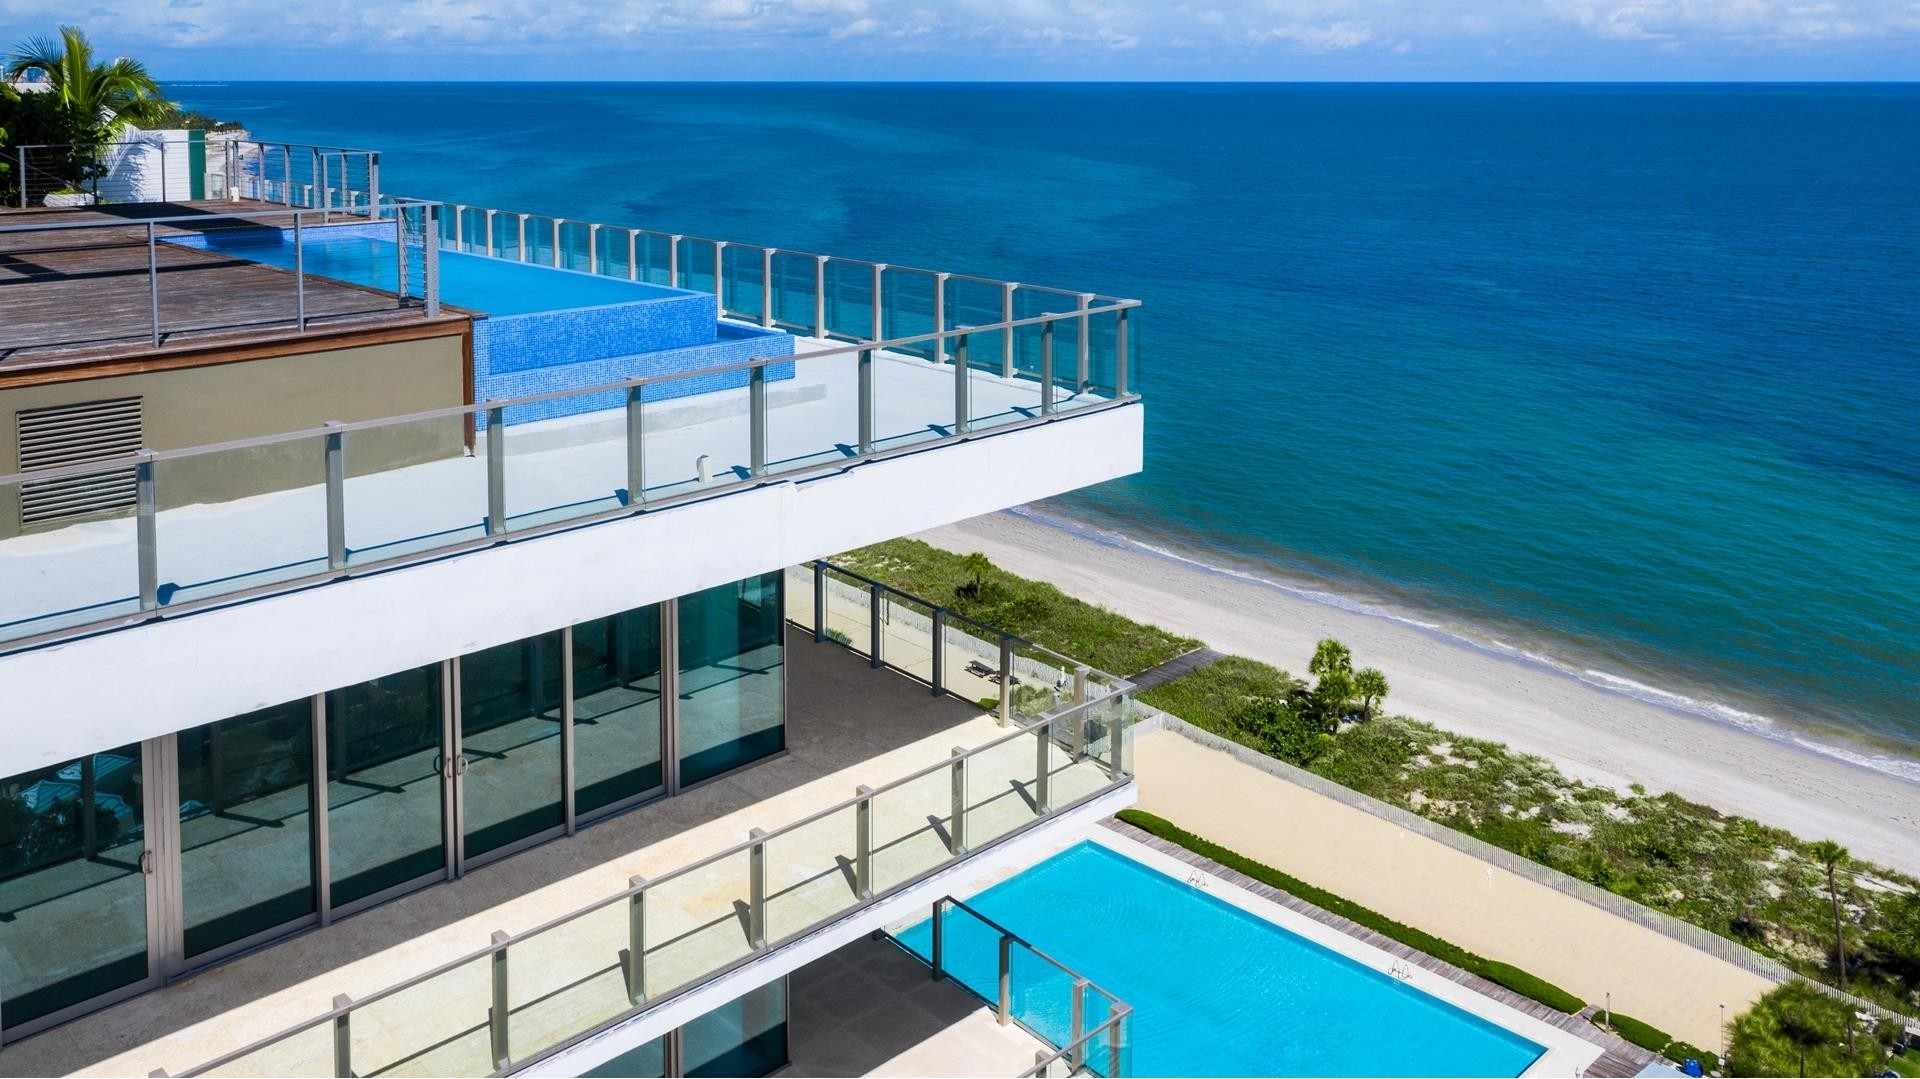 Condominium en 360 Ocean Dr , PH1S Village of Key Biscayne, Key Biscayne, FL 33149